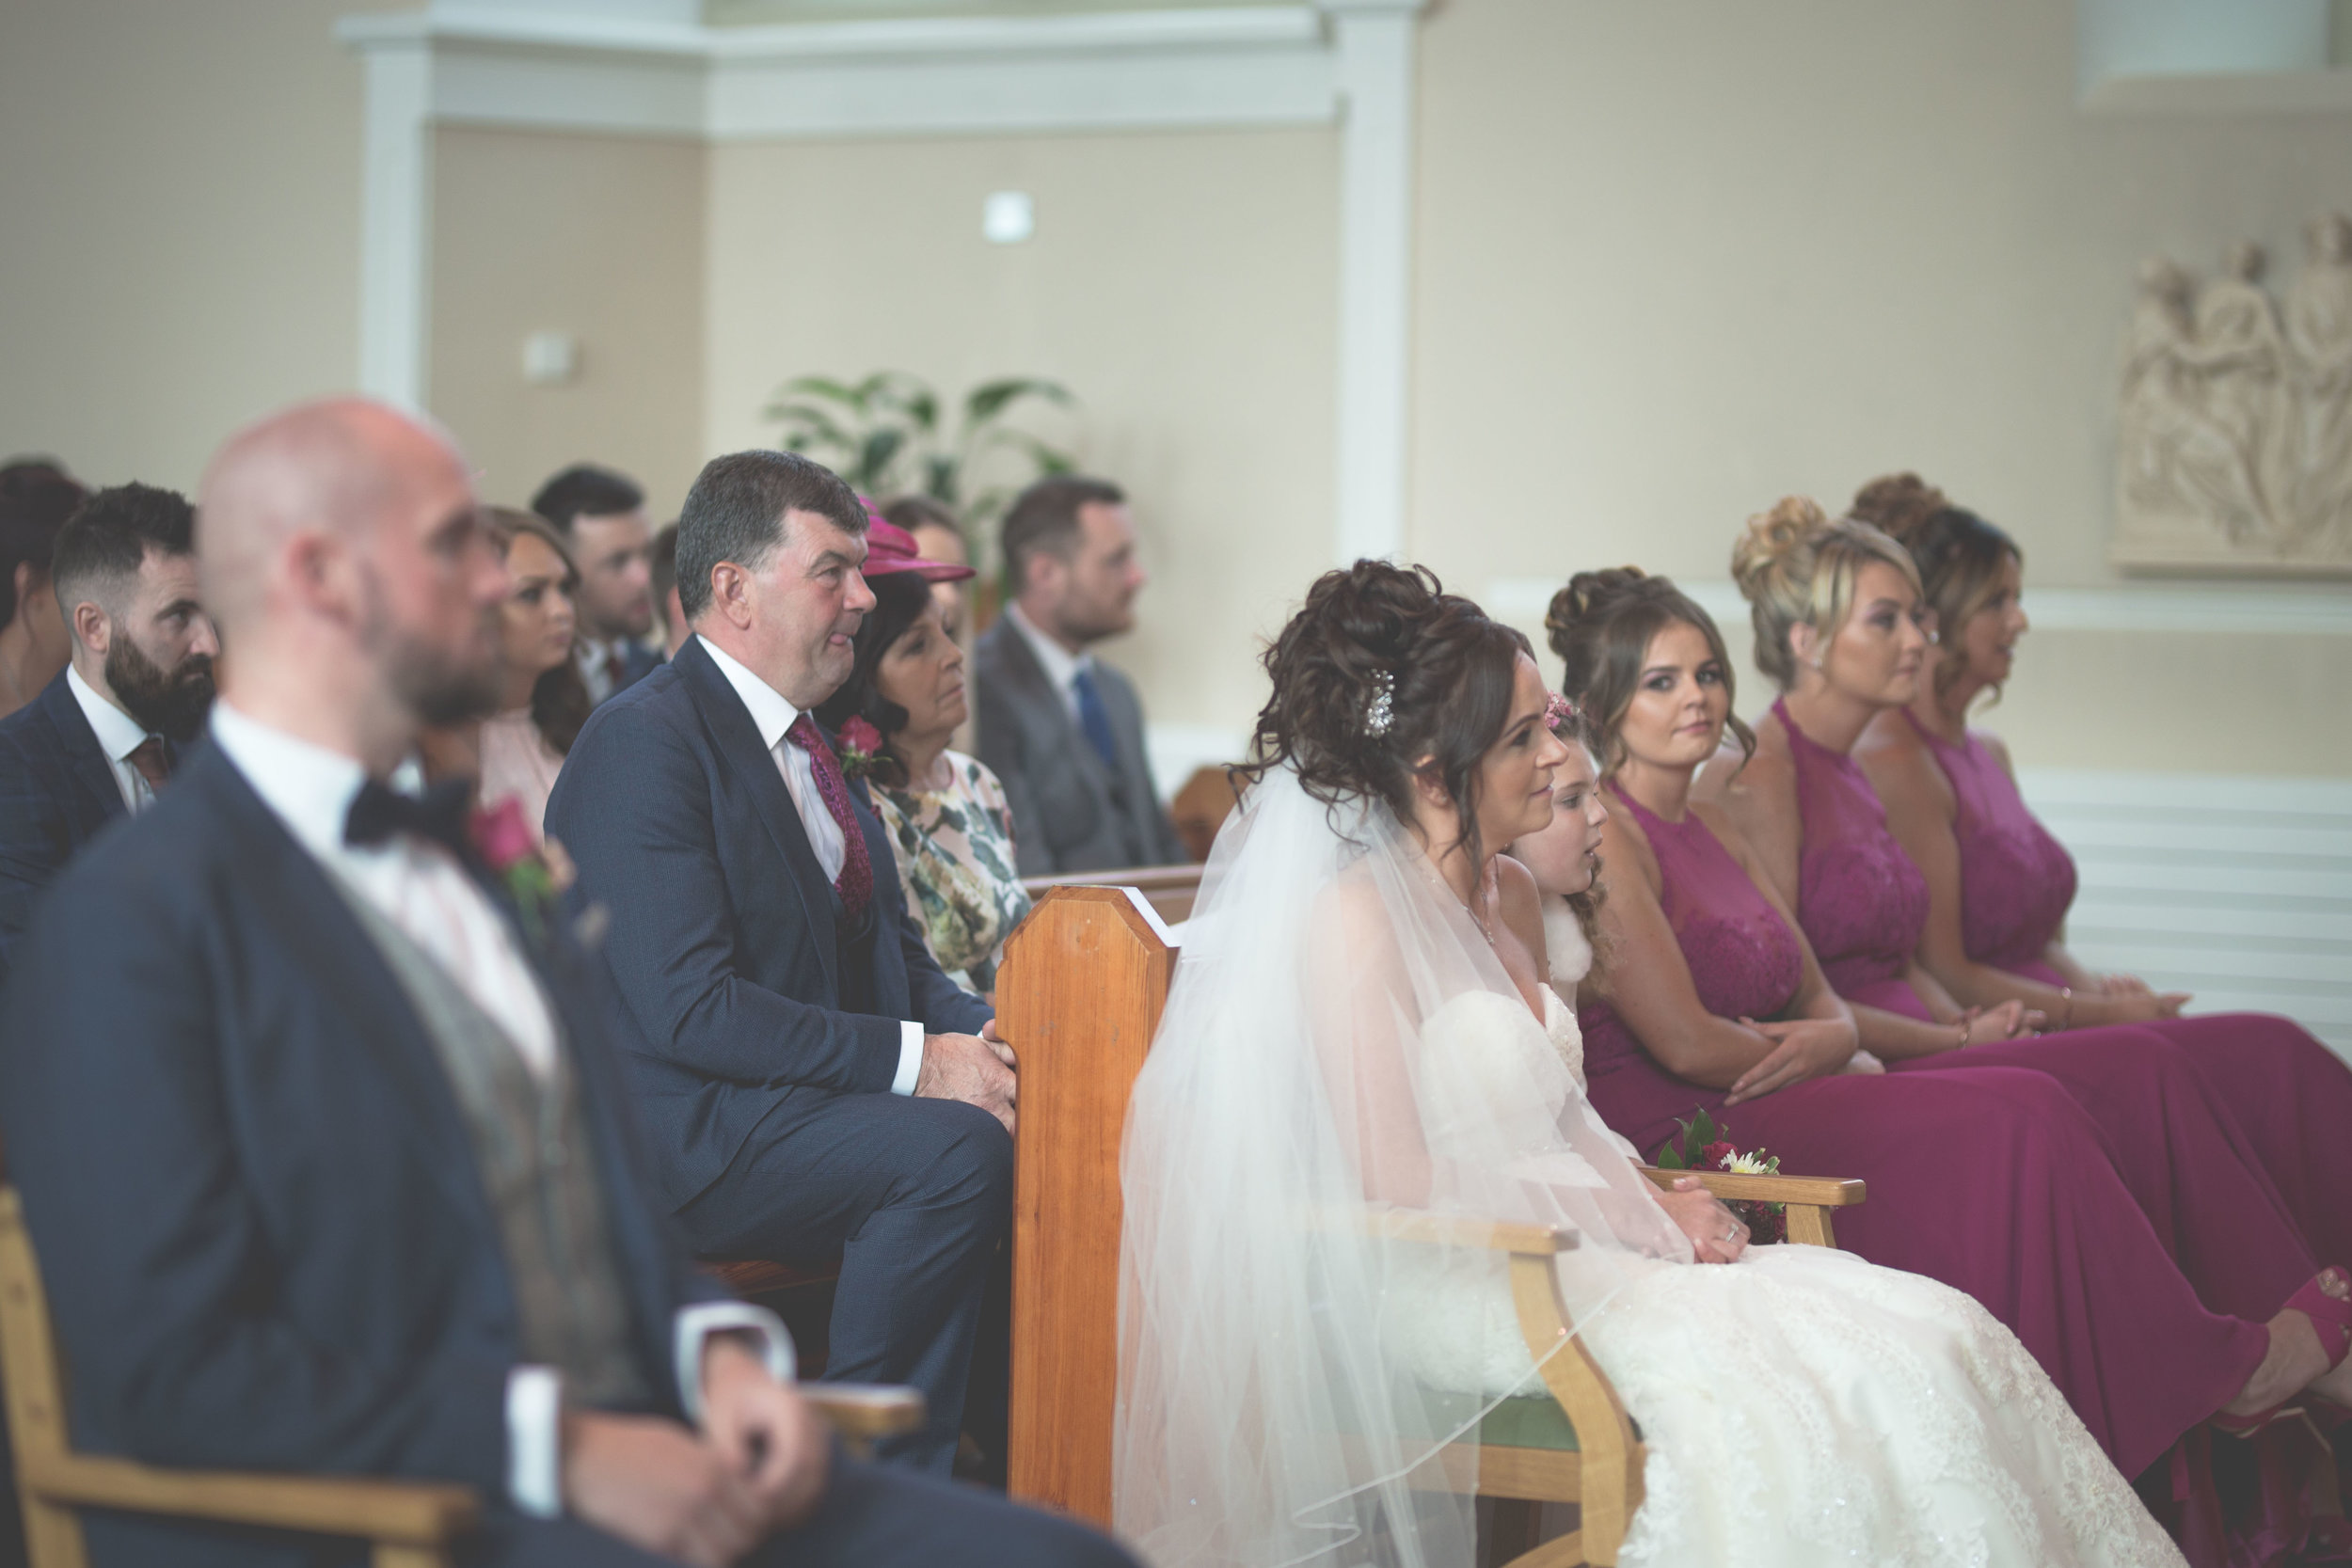 Aisling & Andy - Ceremony-50.jpg